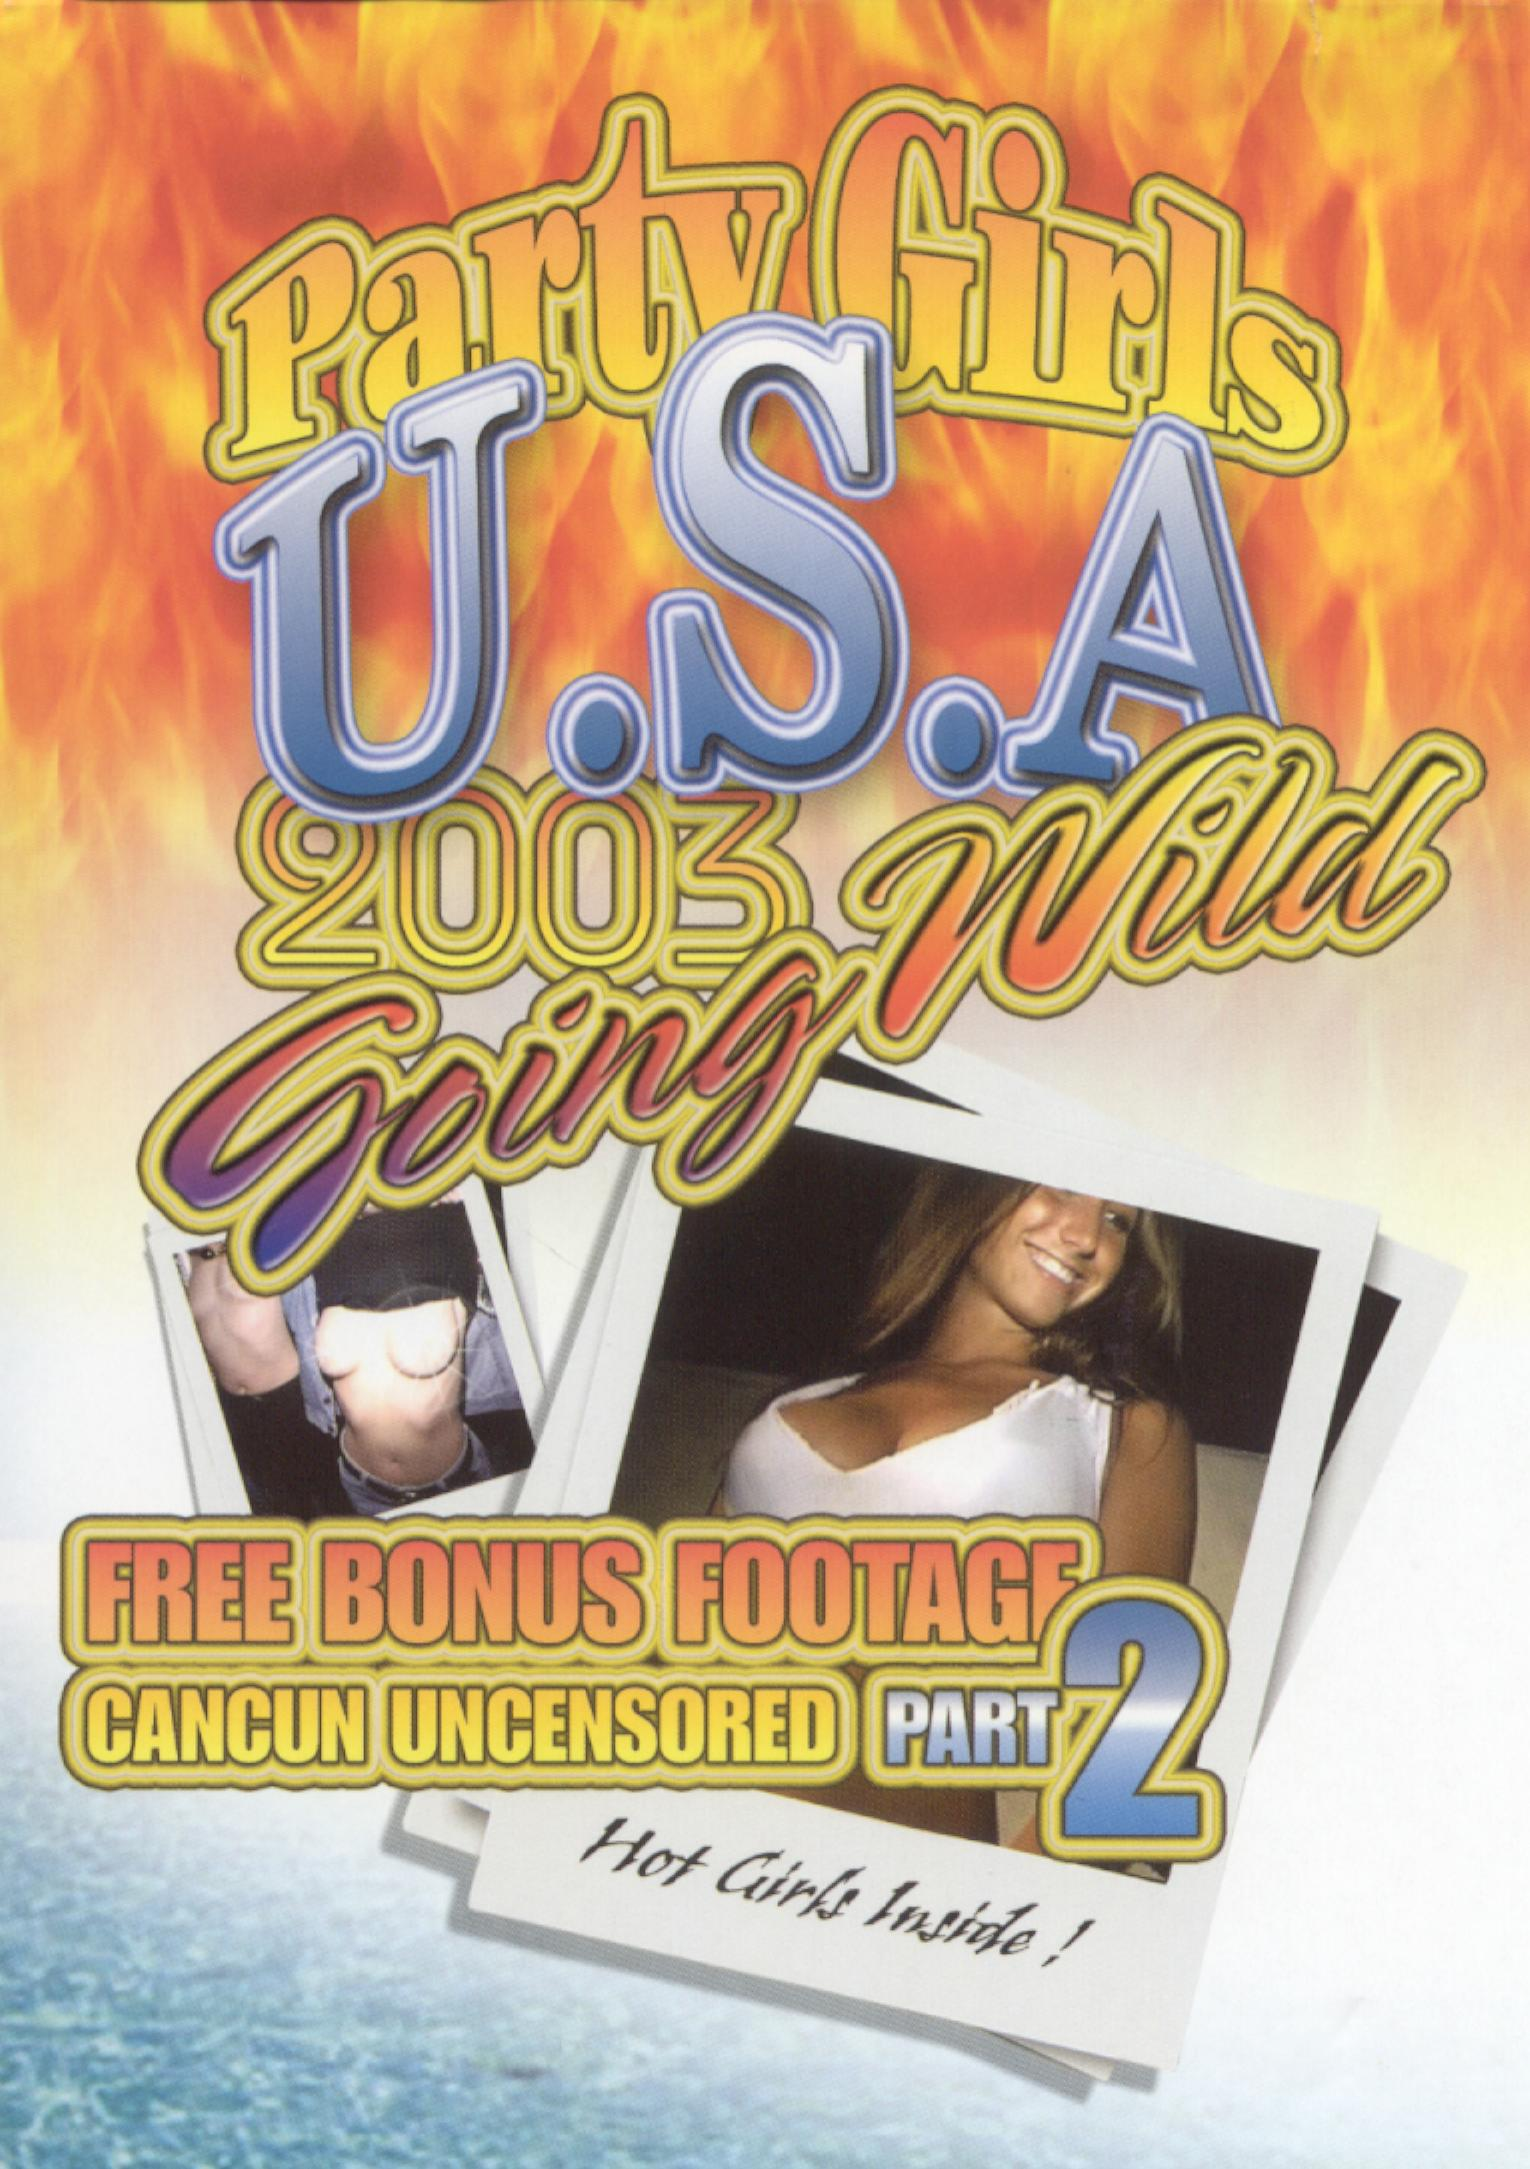 Party Girls U.S.A. 2003: Going Wild